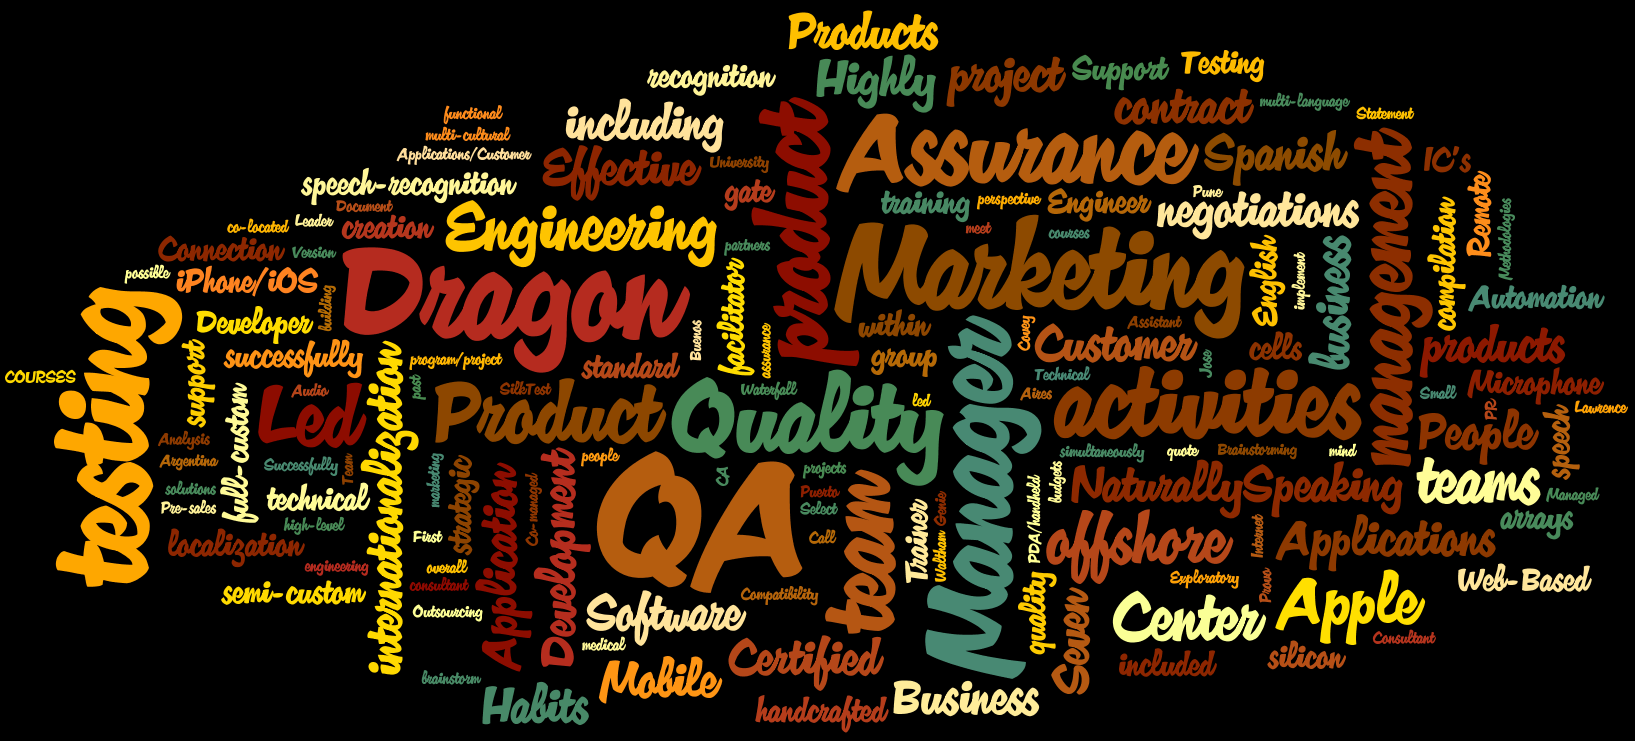 Wordle.net result from my professional resume...